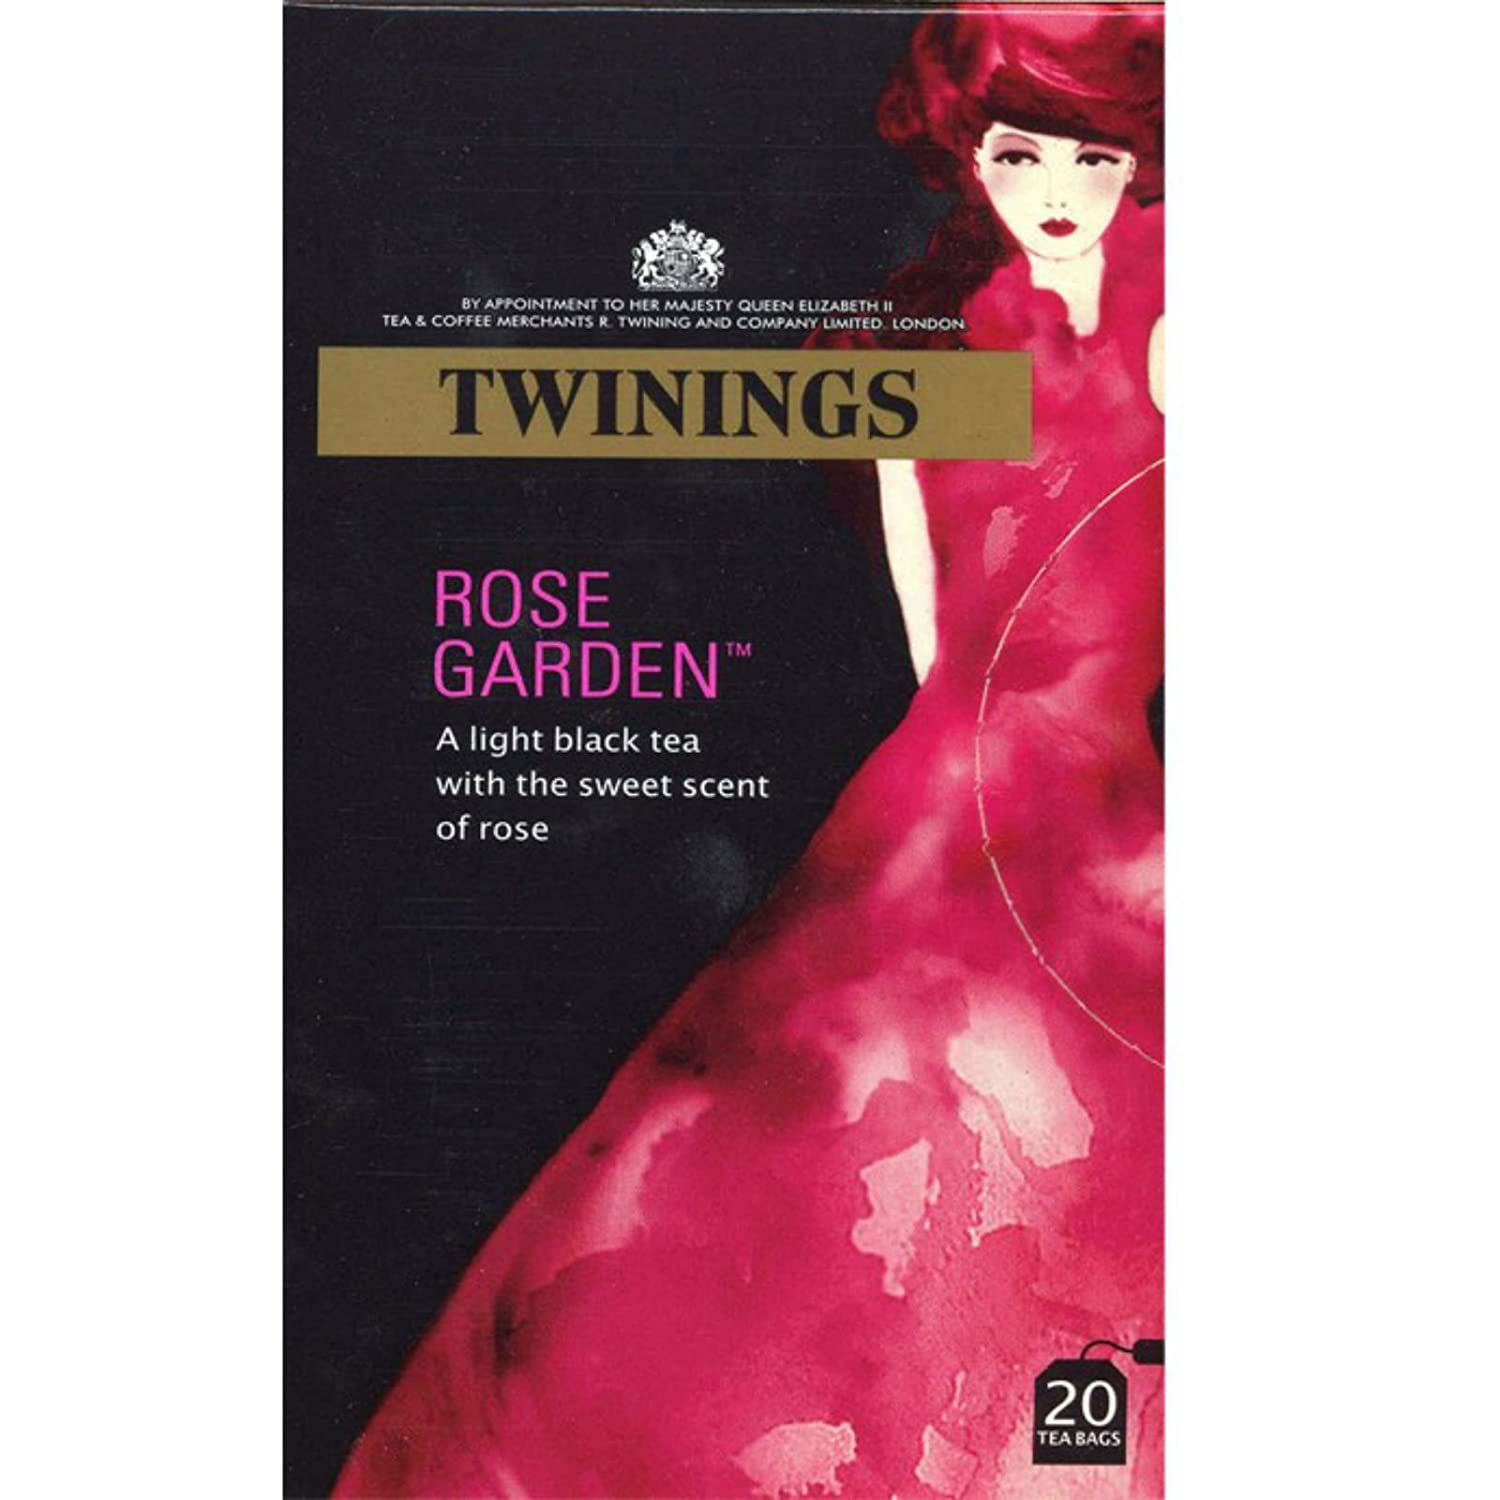 Unique Twinings Rose Garden Tea S G Amazoncouk Grocery With Lovable How To Become A Garden Designer Besides Garden Path Sentences Furthermore Cordless Garden Blower With Astonishing St Dunstan Garden City Also Small Sloping Garden Designs In Addition Garden Umbrella Bq And Glebe Garden Centre As Well As Dry Cleaners Covent Garden Additionally Hartman Aluminium Garden Furniture From Amazoncouk With   Lovable Twinings Rose Garden Tea S G Amazoncouk Grocery With Astonishing How To Become A Garden Designer Besides Garden Path Sentences Furthermore Cordless Garden Blower And Unique St Dunstan Garden City Also Small Sloping Garden Designs In Addition Garden Umbrella Bq From Amazoncouk